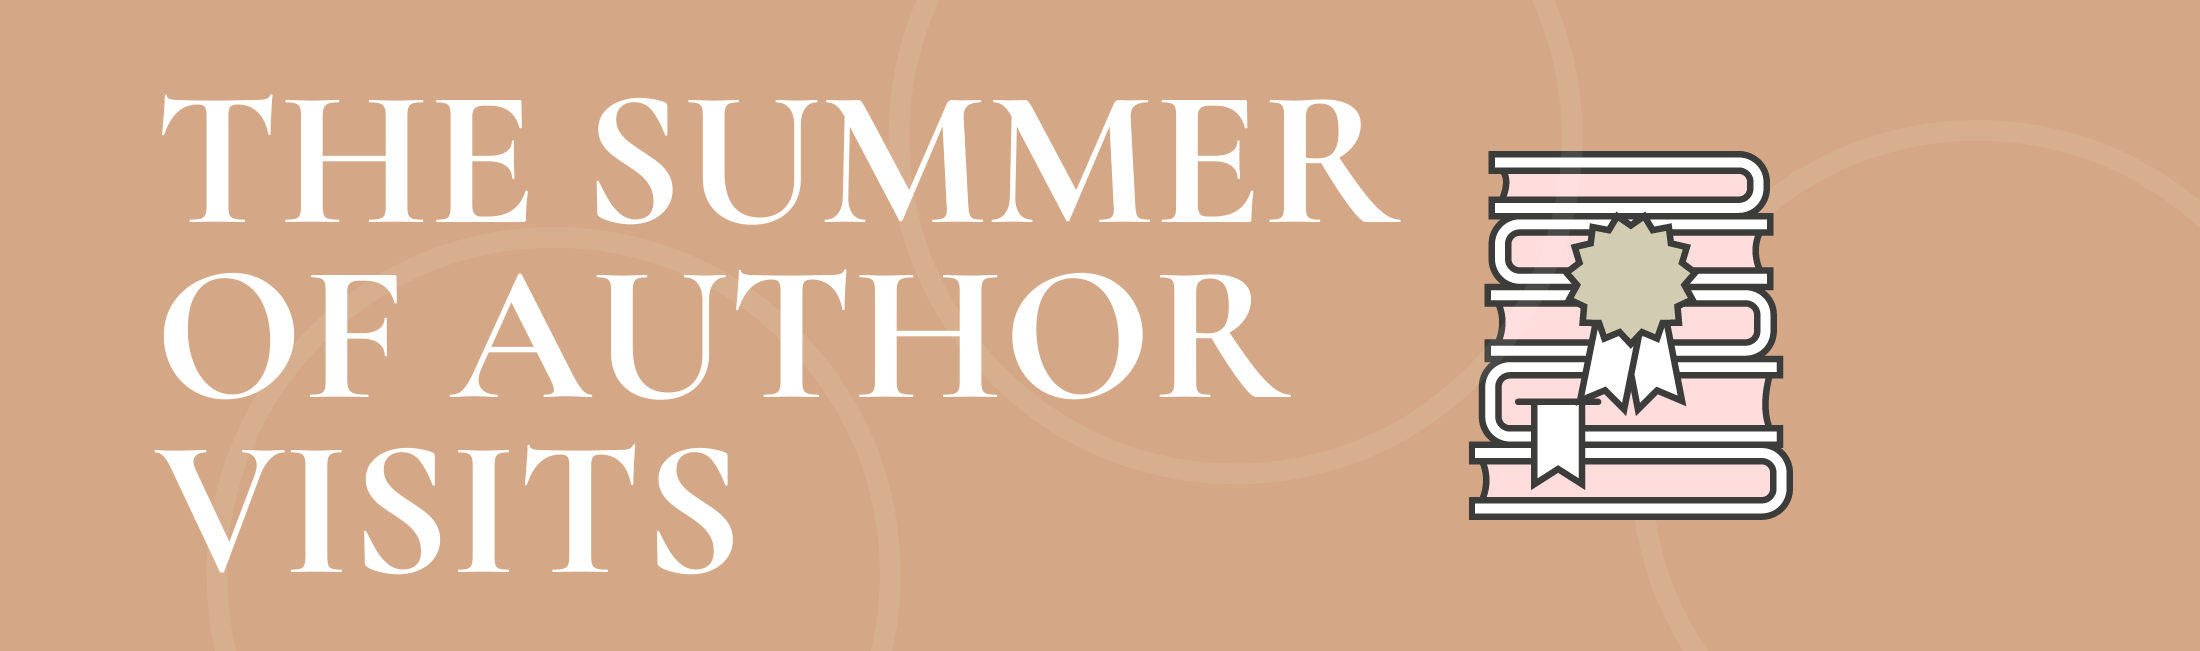 the summer of author visits